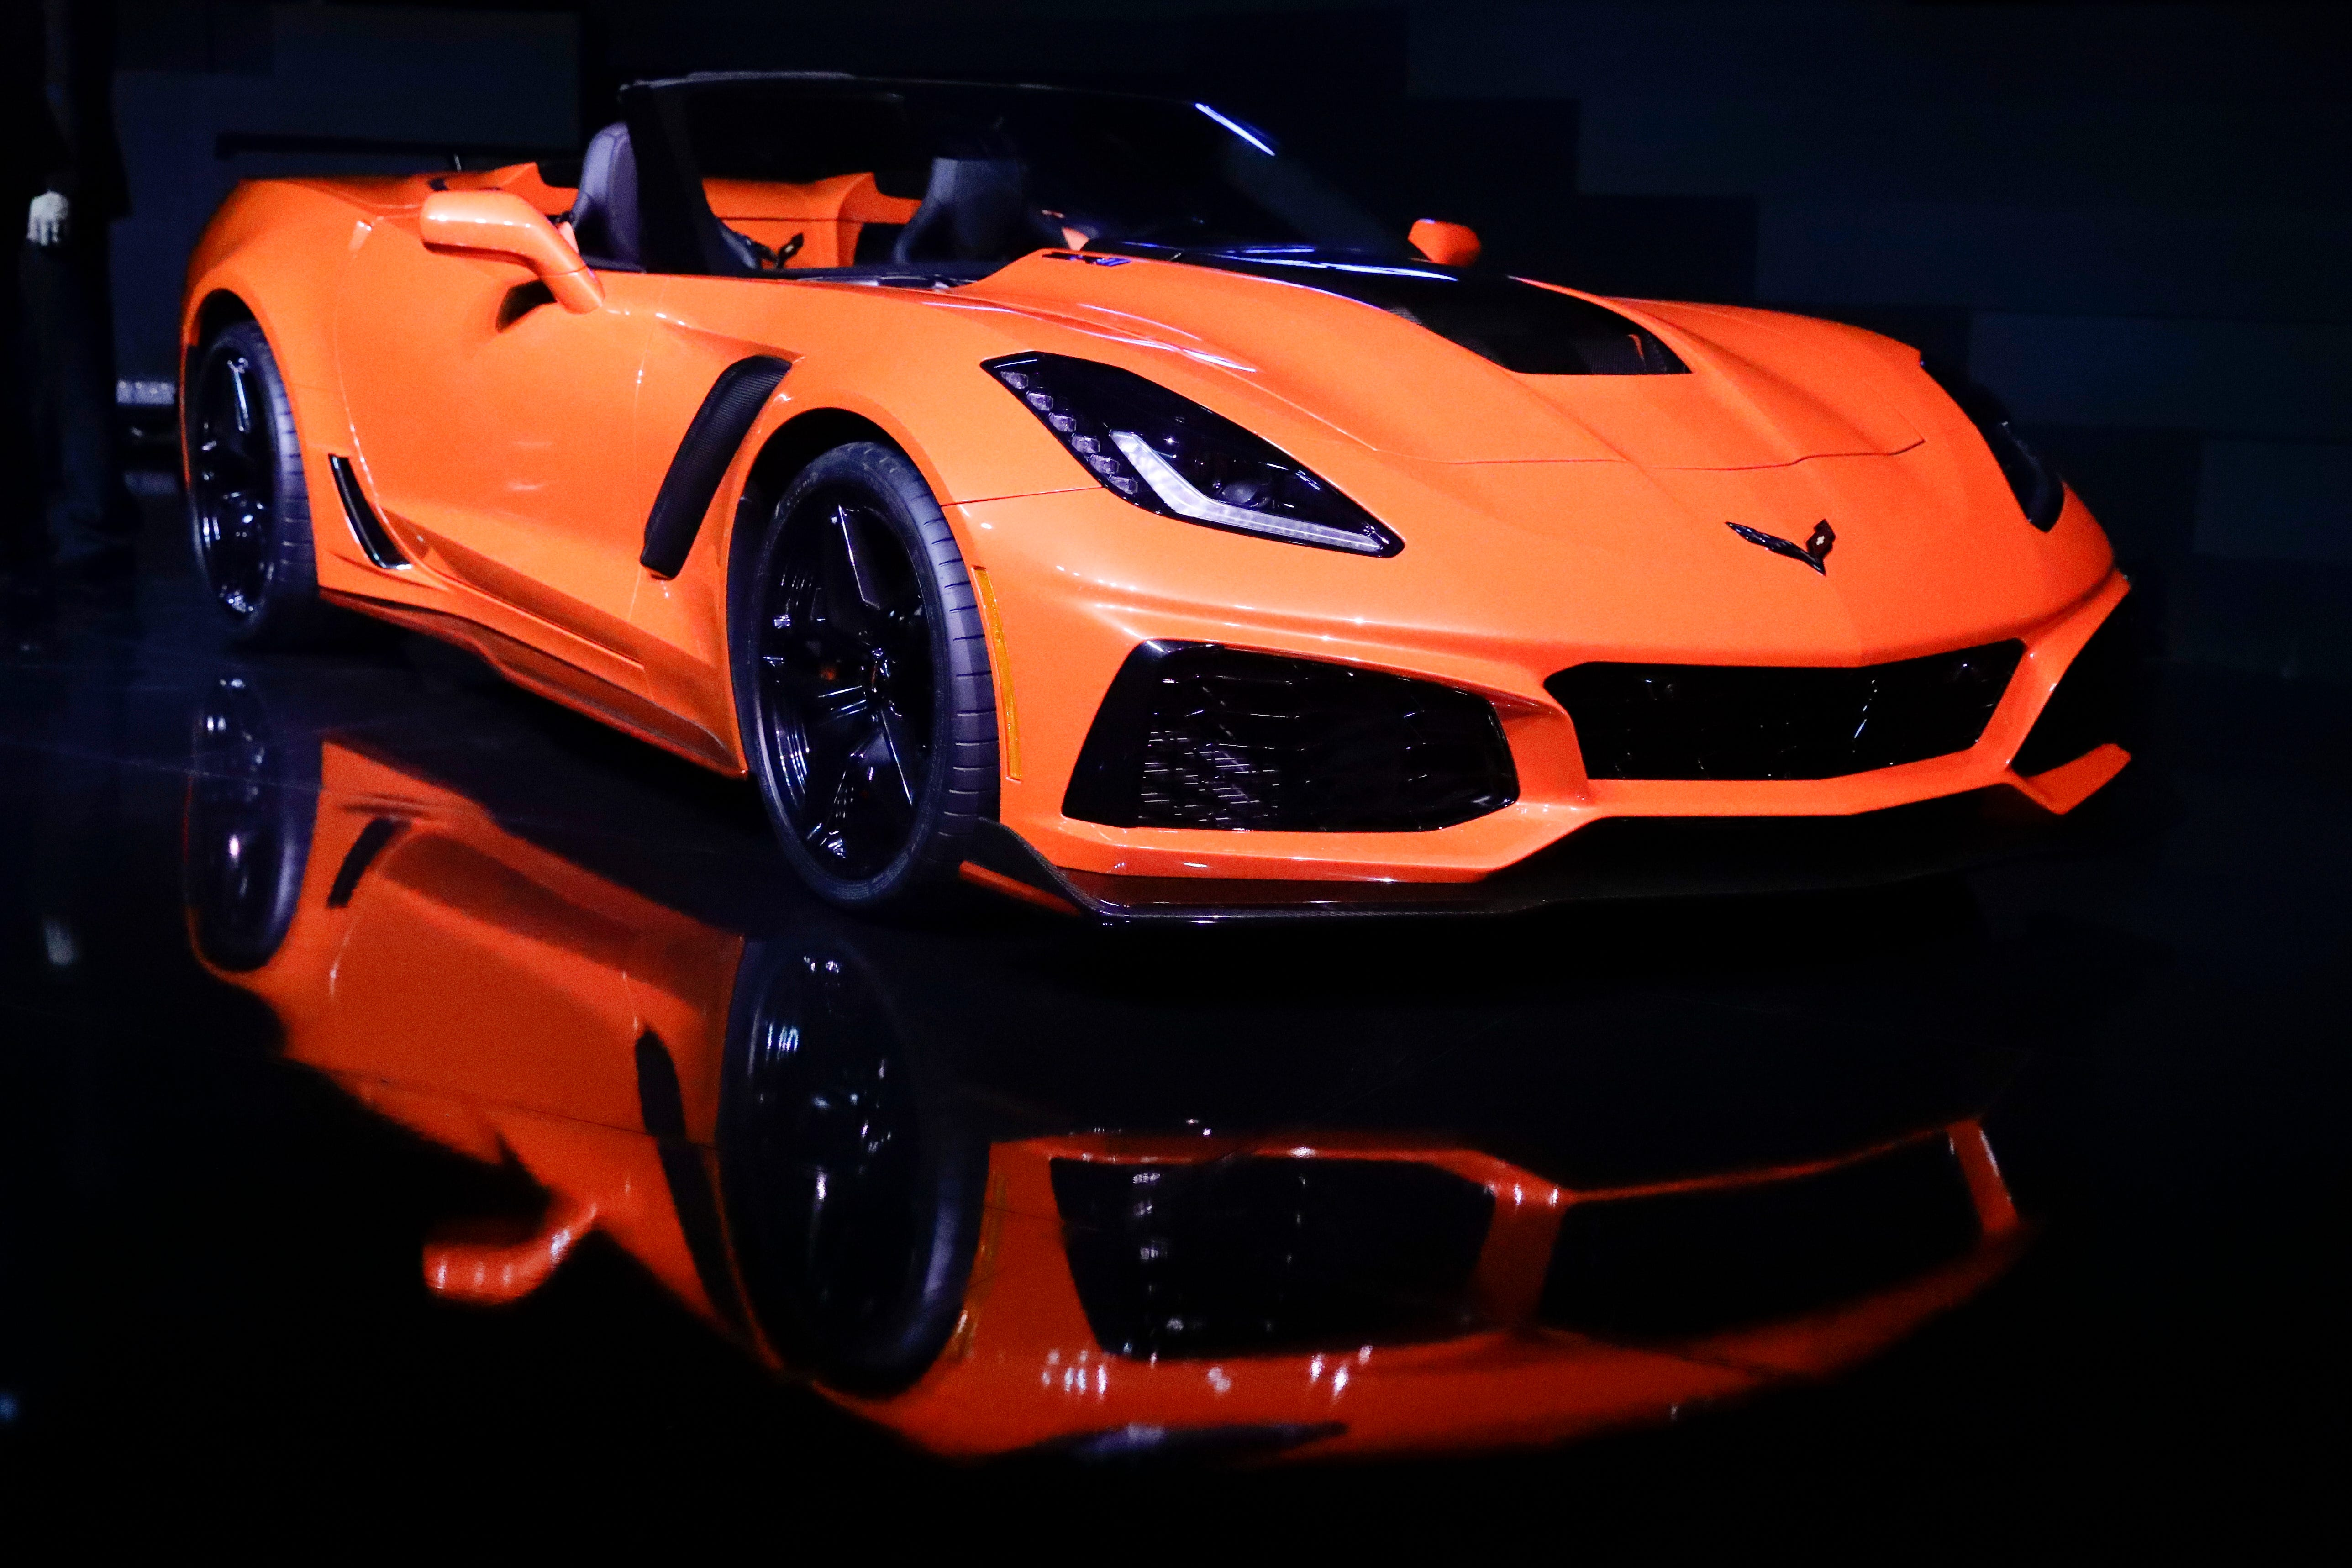 2019 Chevrolet Corvette ZR1 convertible: With 755